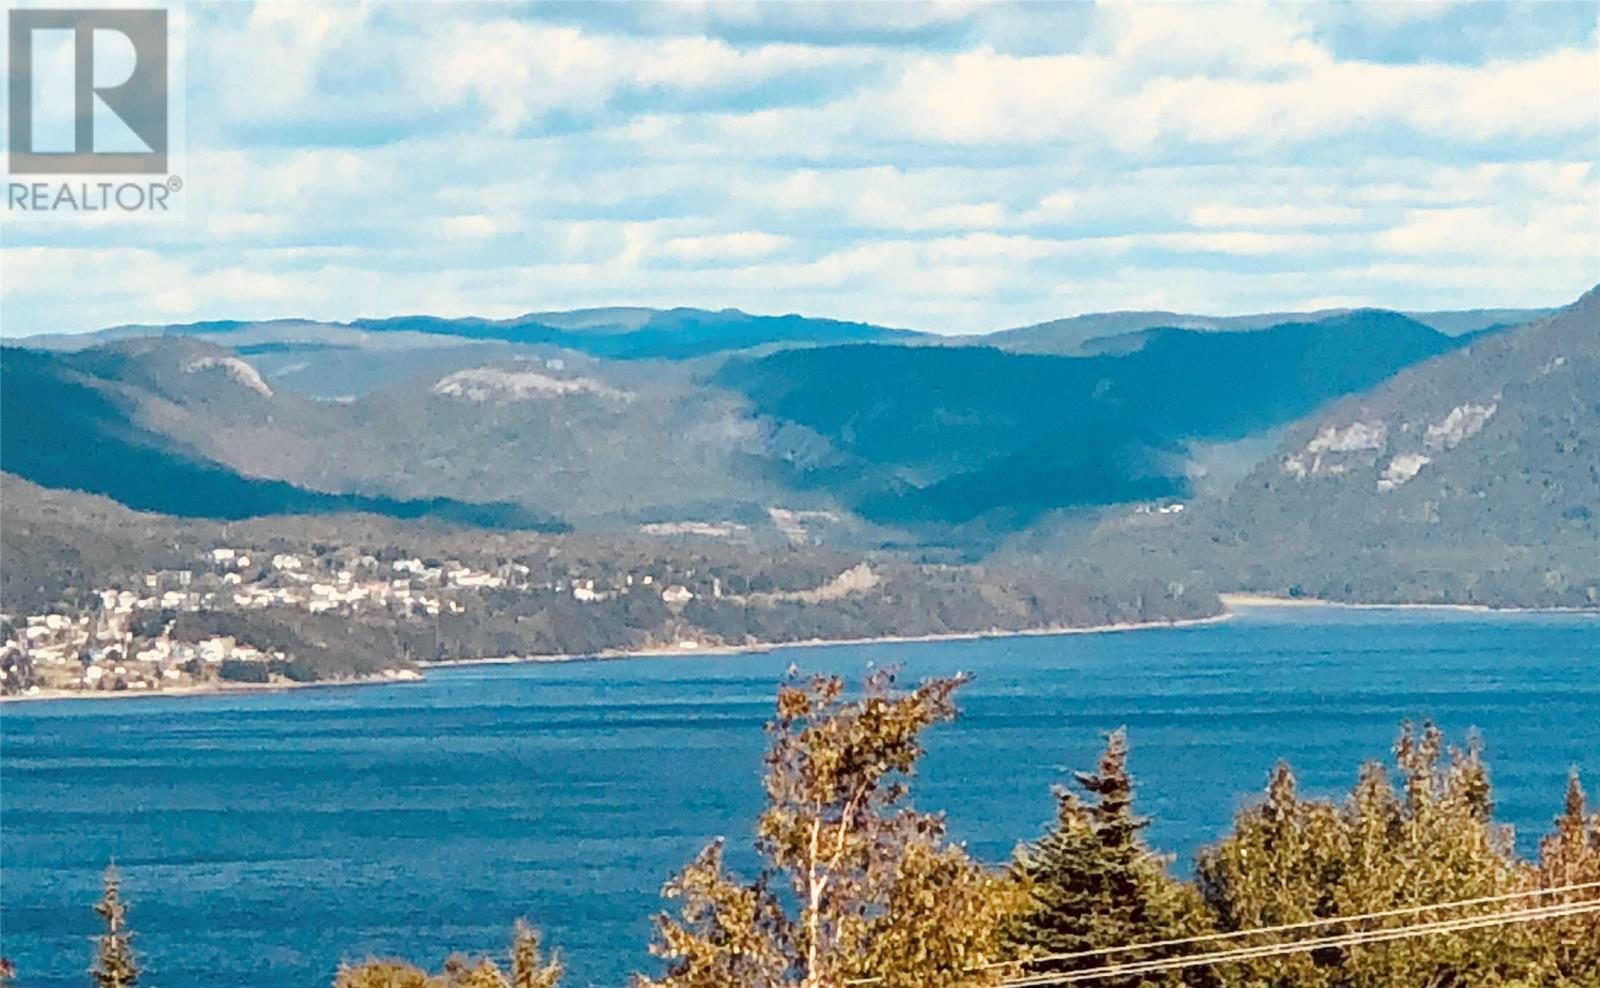 Lot 35 Parkway Heights, Corner Brook NL A2H7E6 - Photo 1